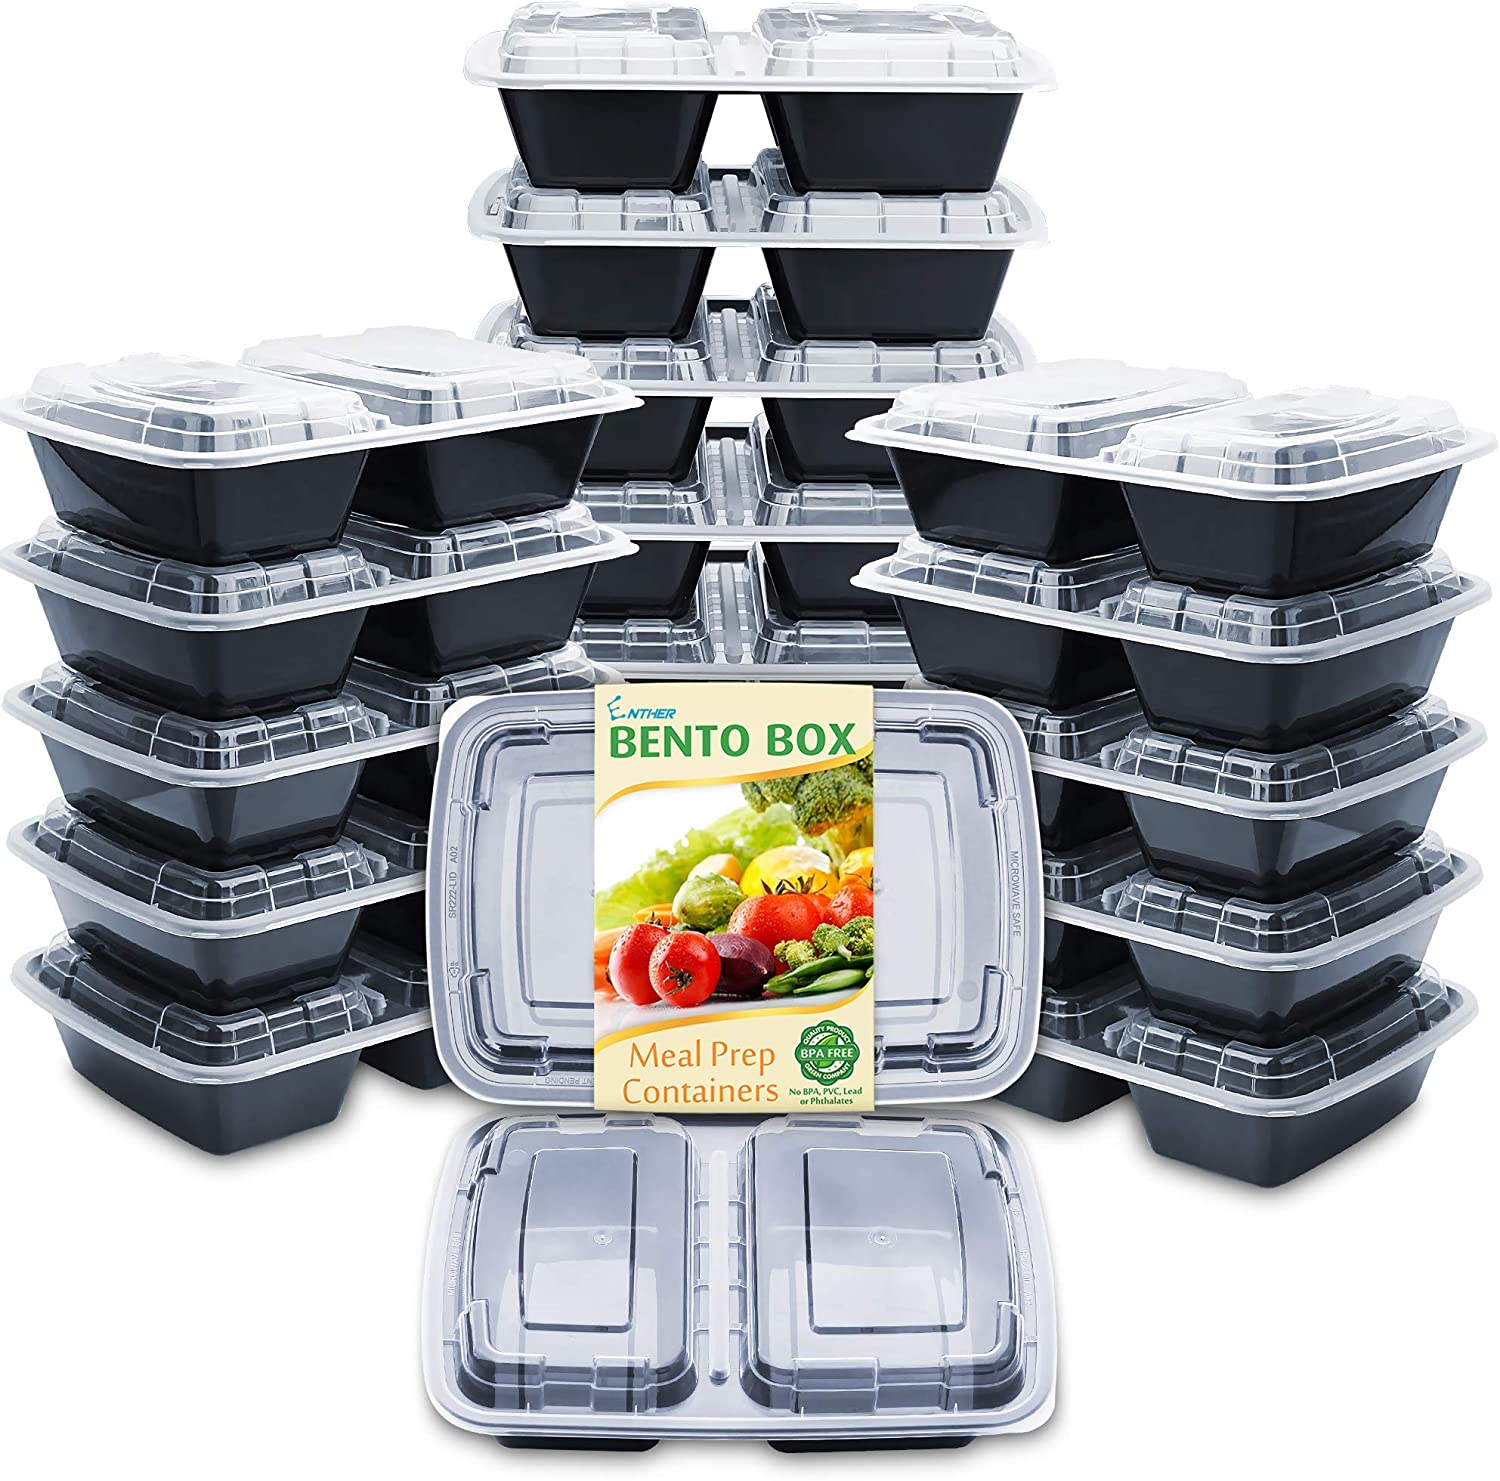 Enther Meal Prep Containers 20 Pack F Topics on TV with Max 59% OFF Lids 2 Compartment